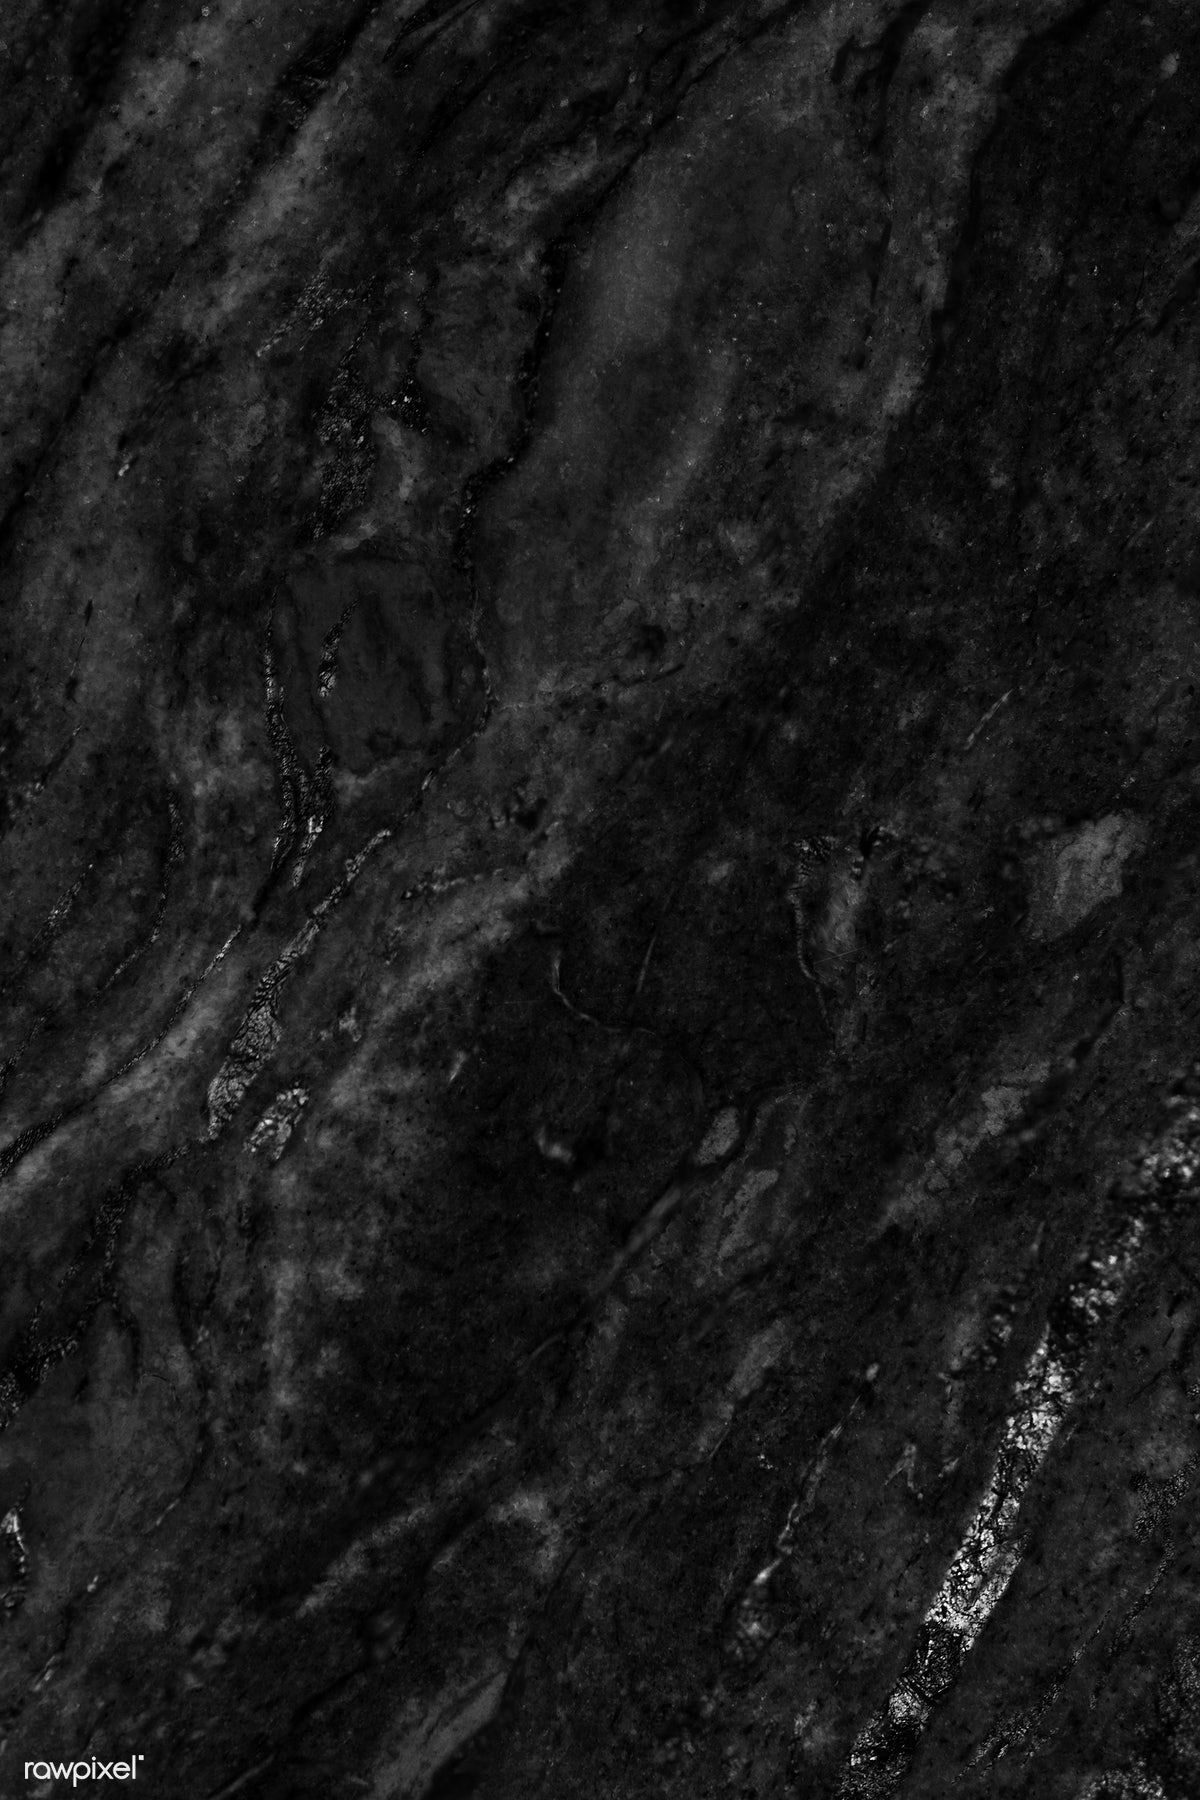 Pin By Rawpixel On Wallpapers In 2020 Marble Texture Flowers Black Background Free Illustrations